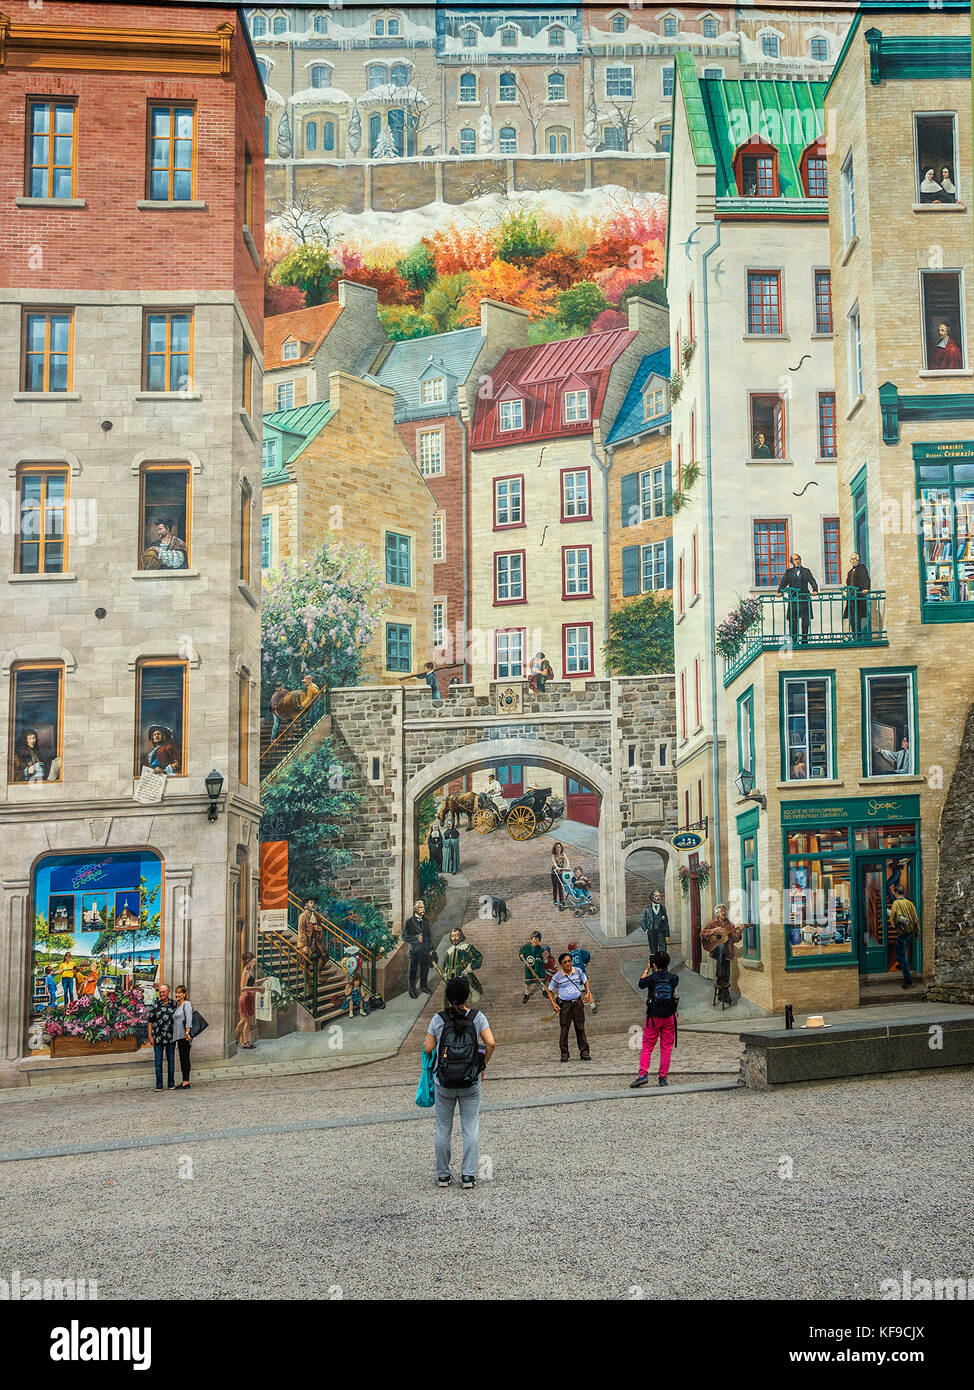 Wall mural Notre Dame street Quebec City Canada Stock Photo